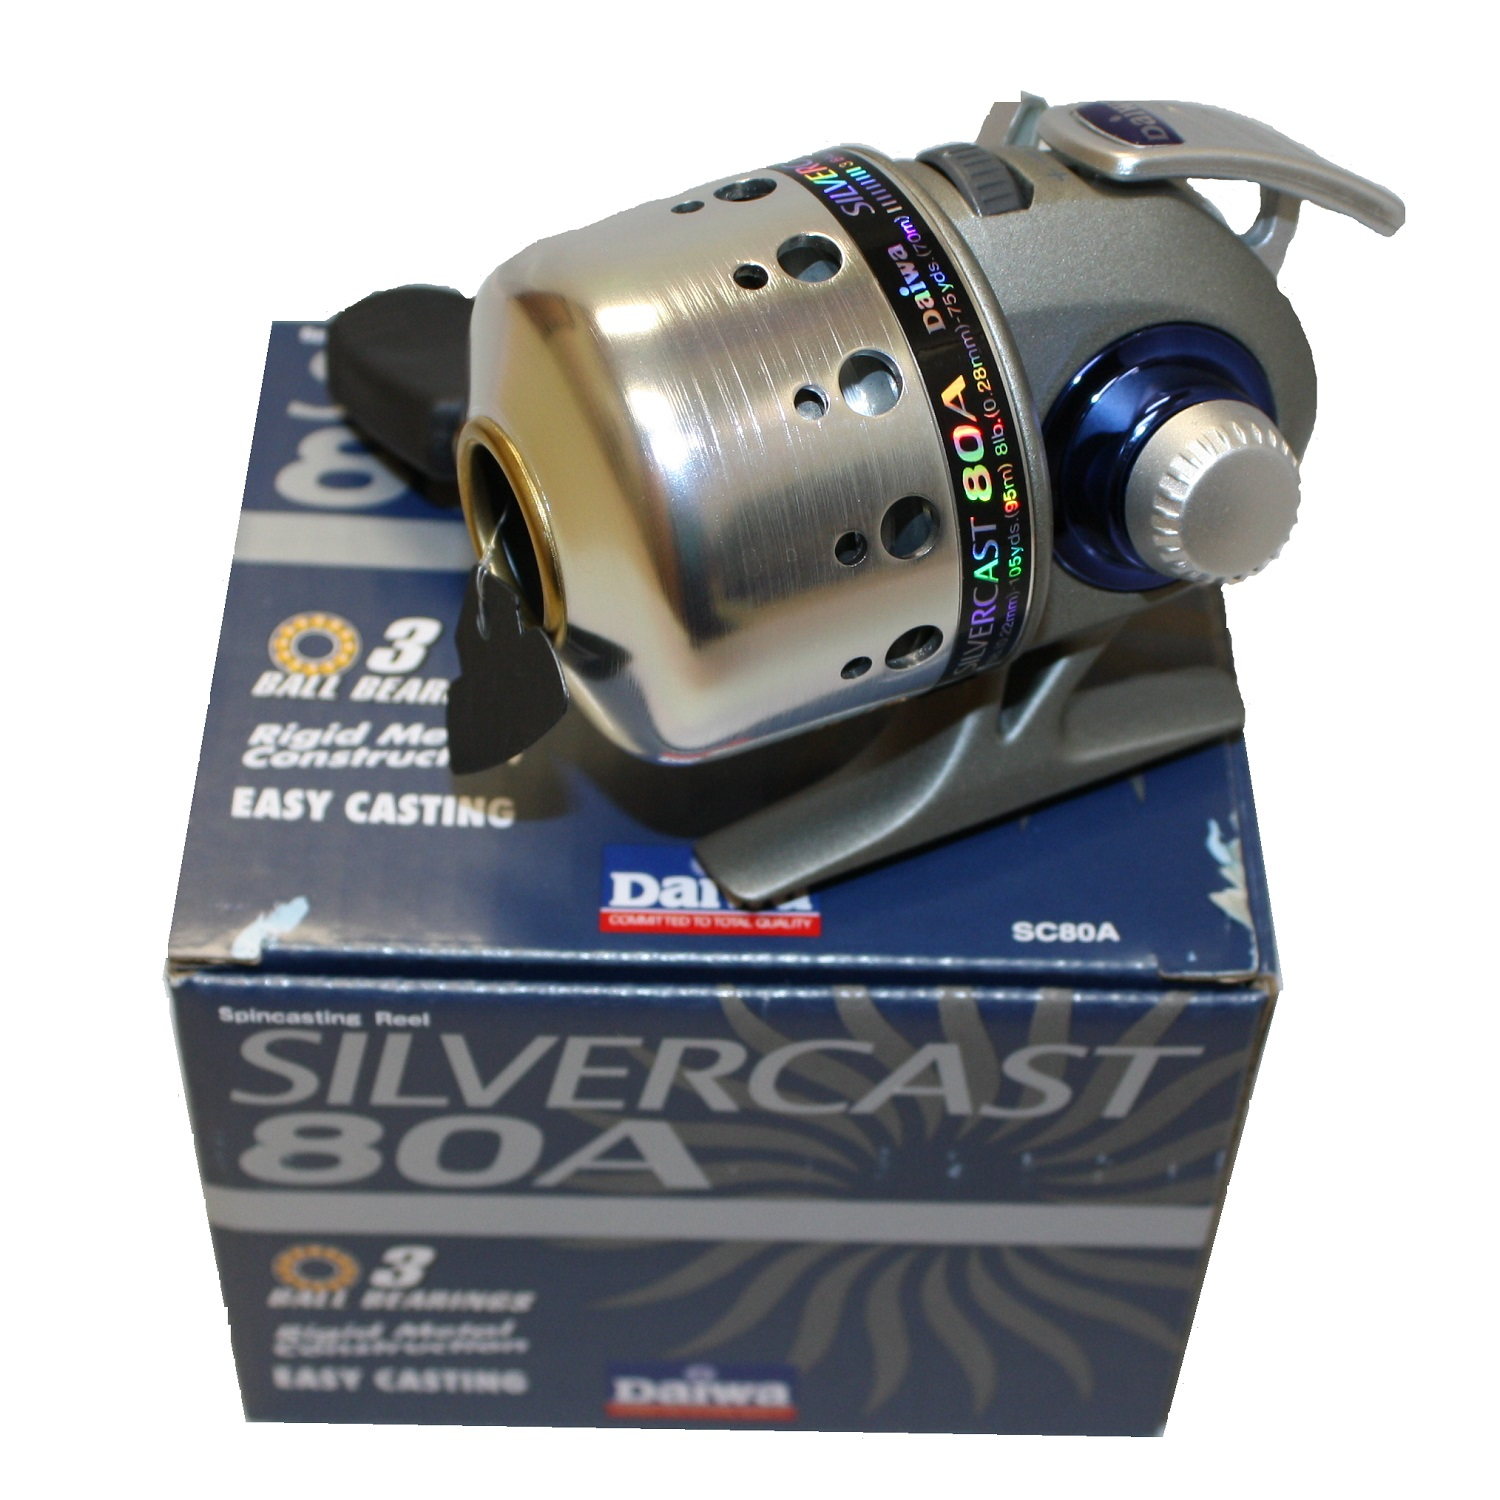 SC80A Daiwa Silvercast-A 80A 4.3:1 Spincast Left//Right Hand Fishing Reel